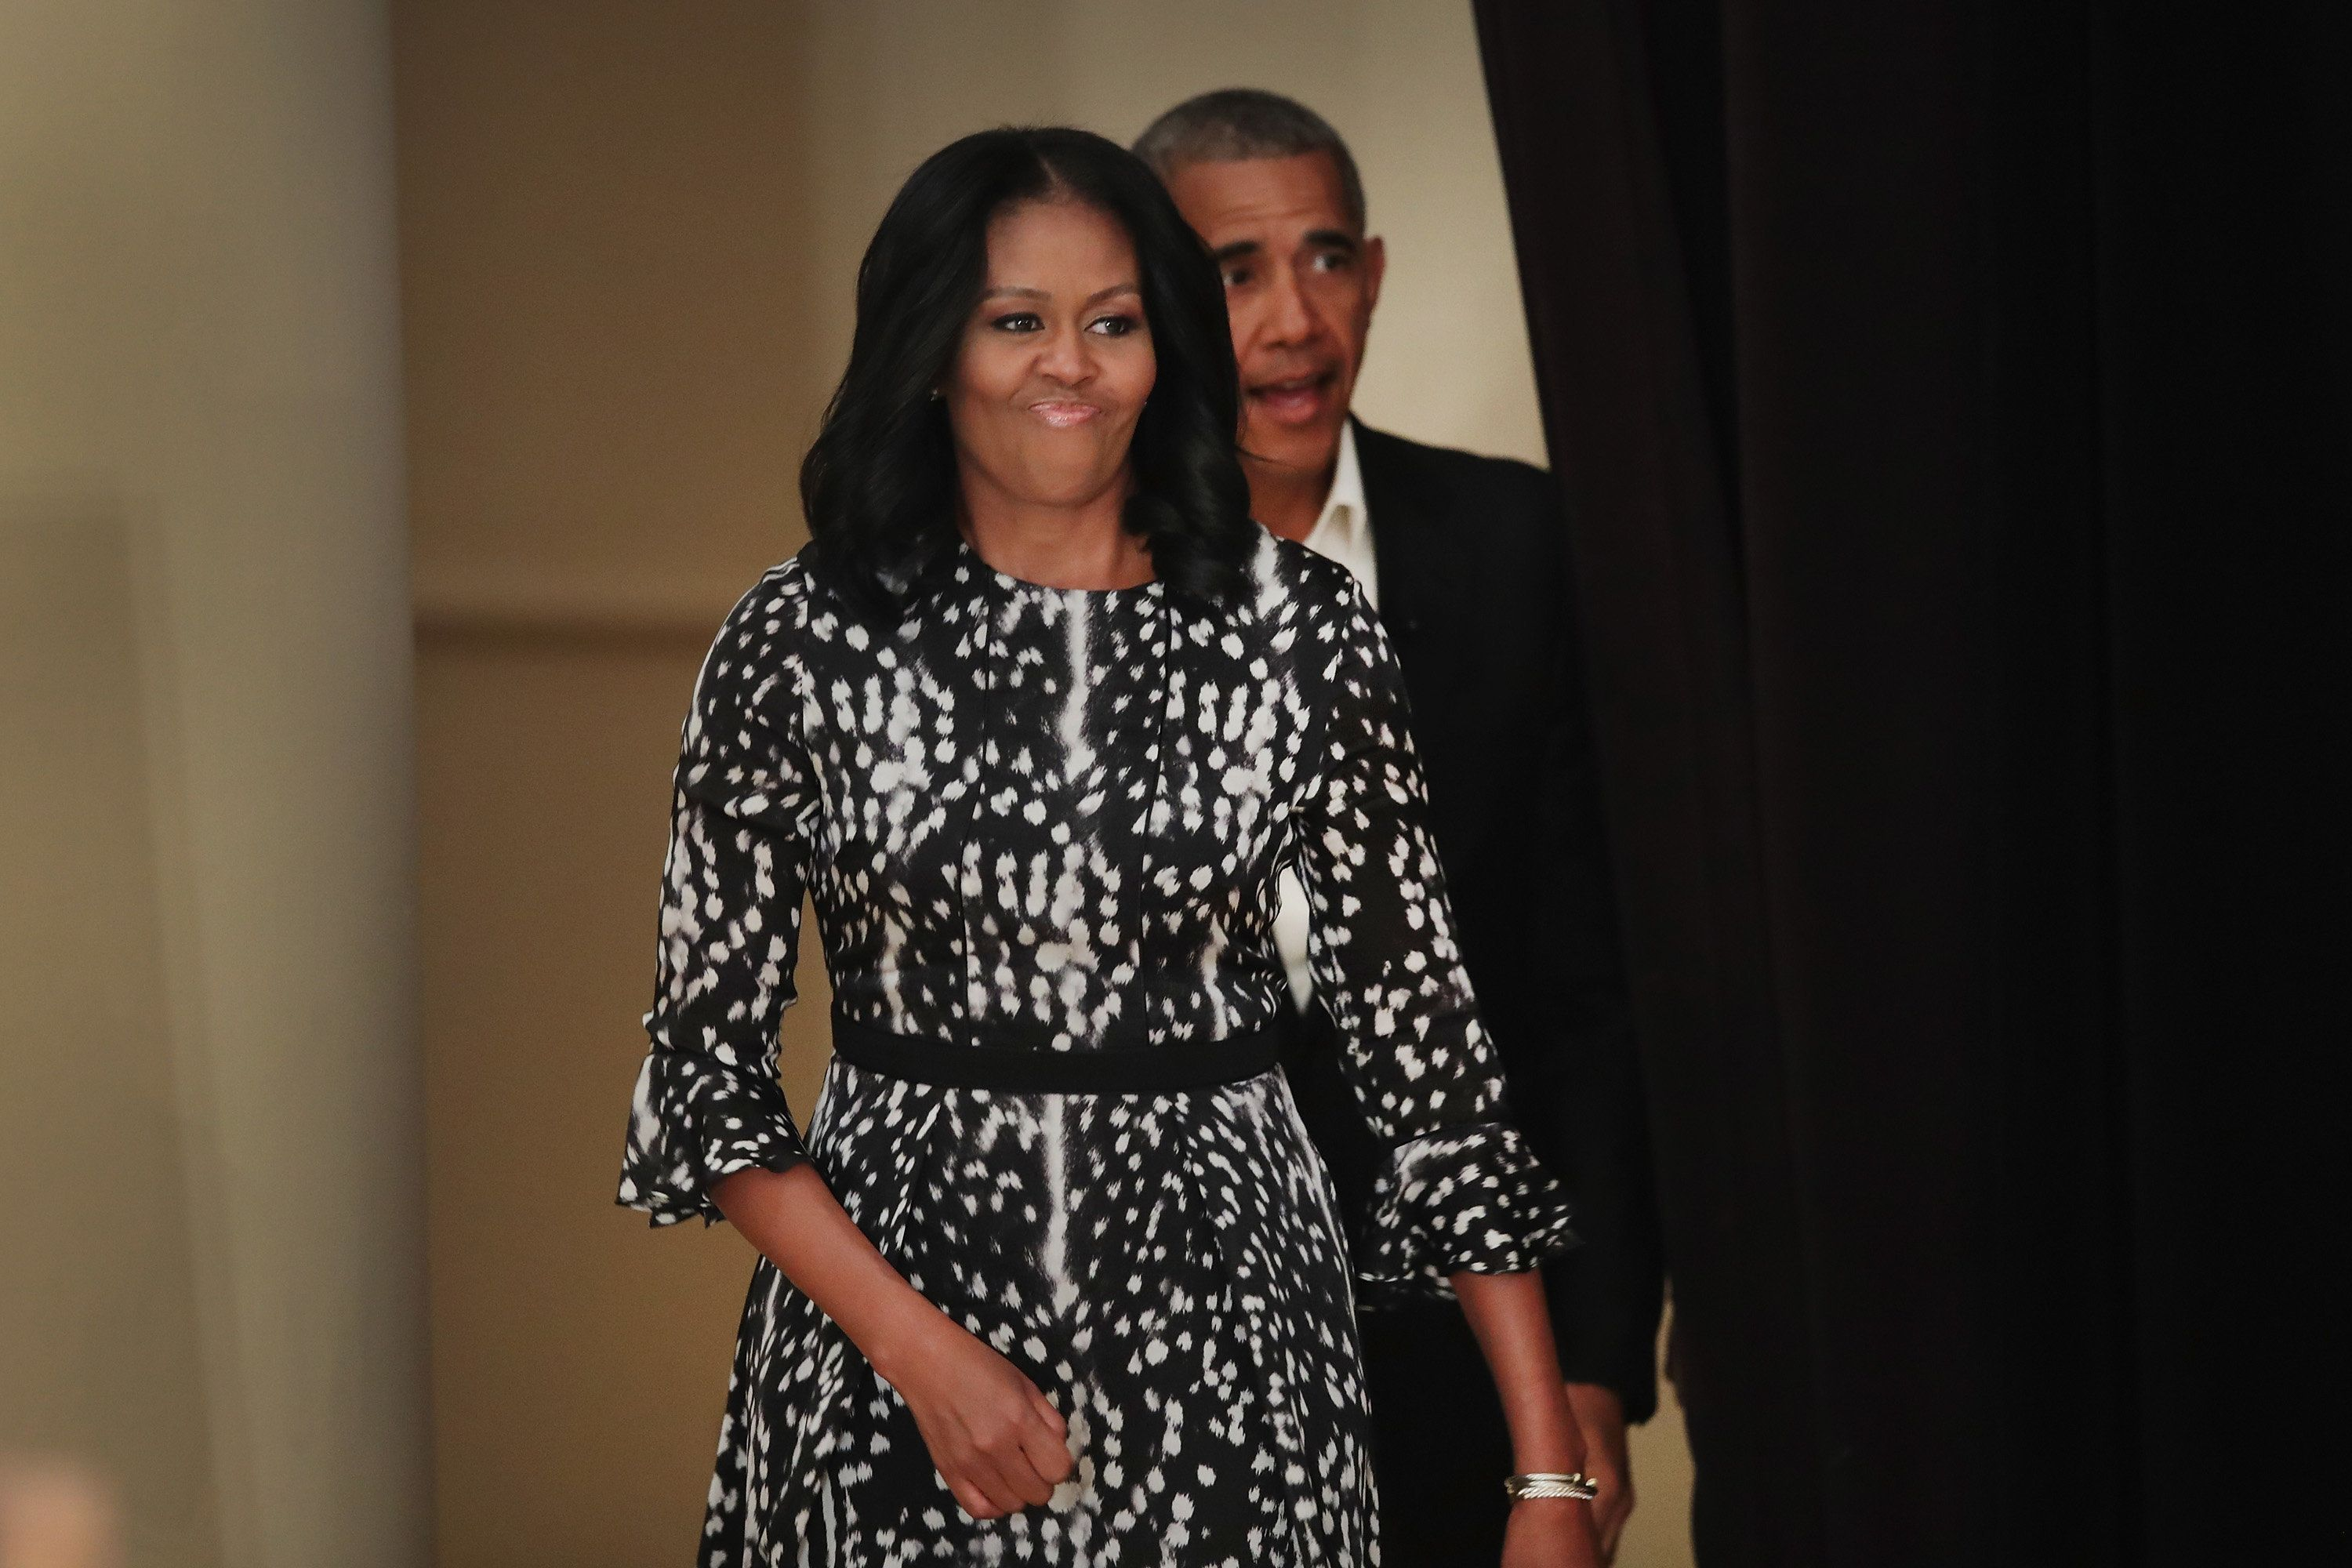 Former U.S. president Barack Obama and first lady Michelle Obama arrive to talk about the Obama Presidential Center during a community event at the South Shore Cultural Center on May 3 in Chicago, Illinois.